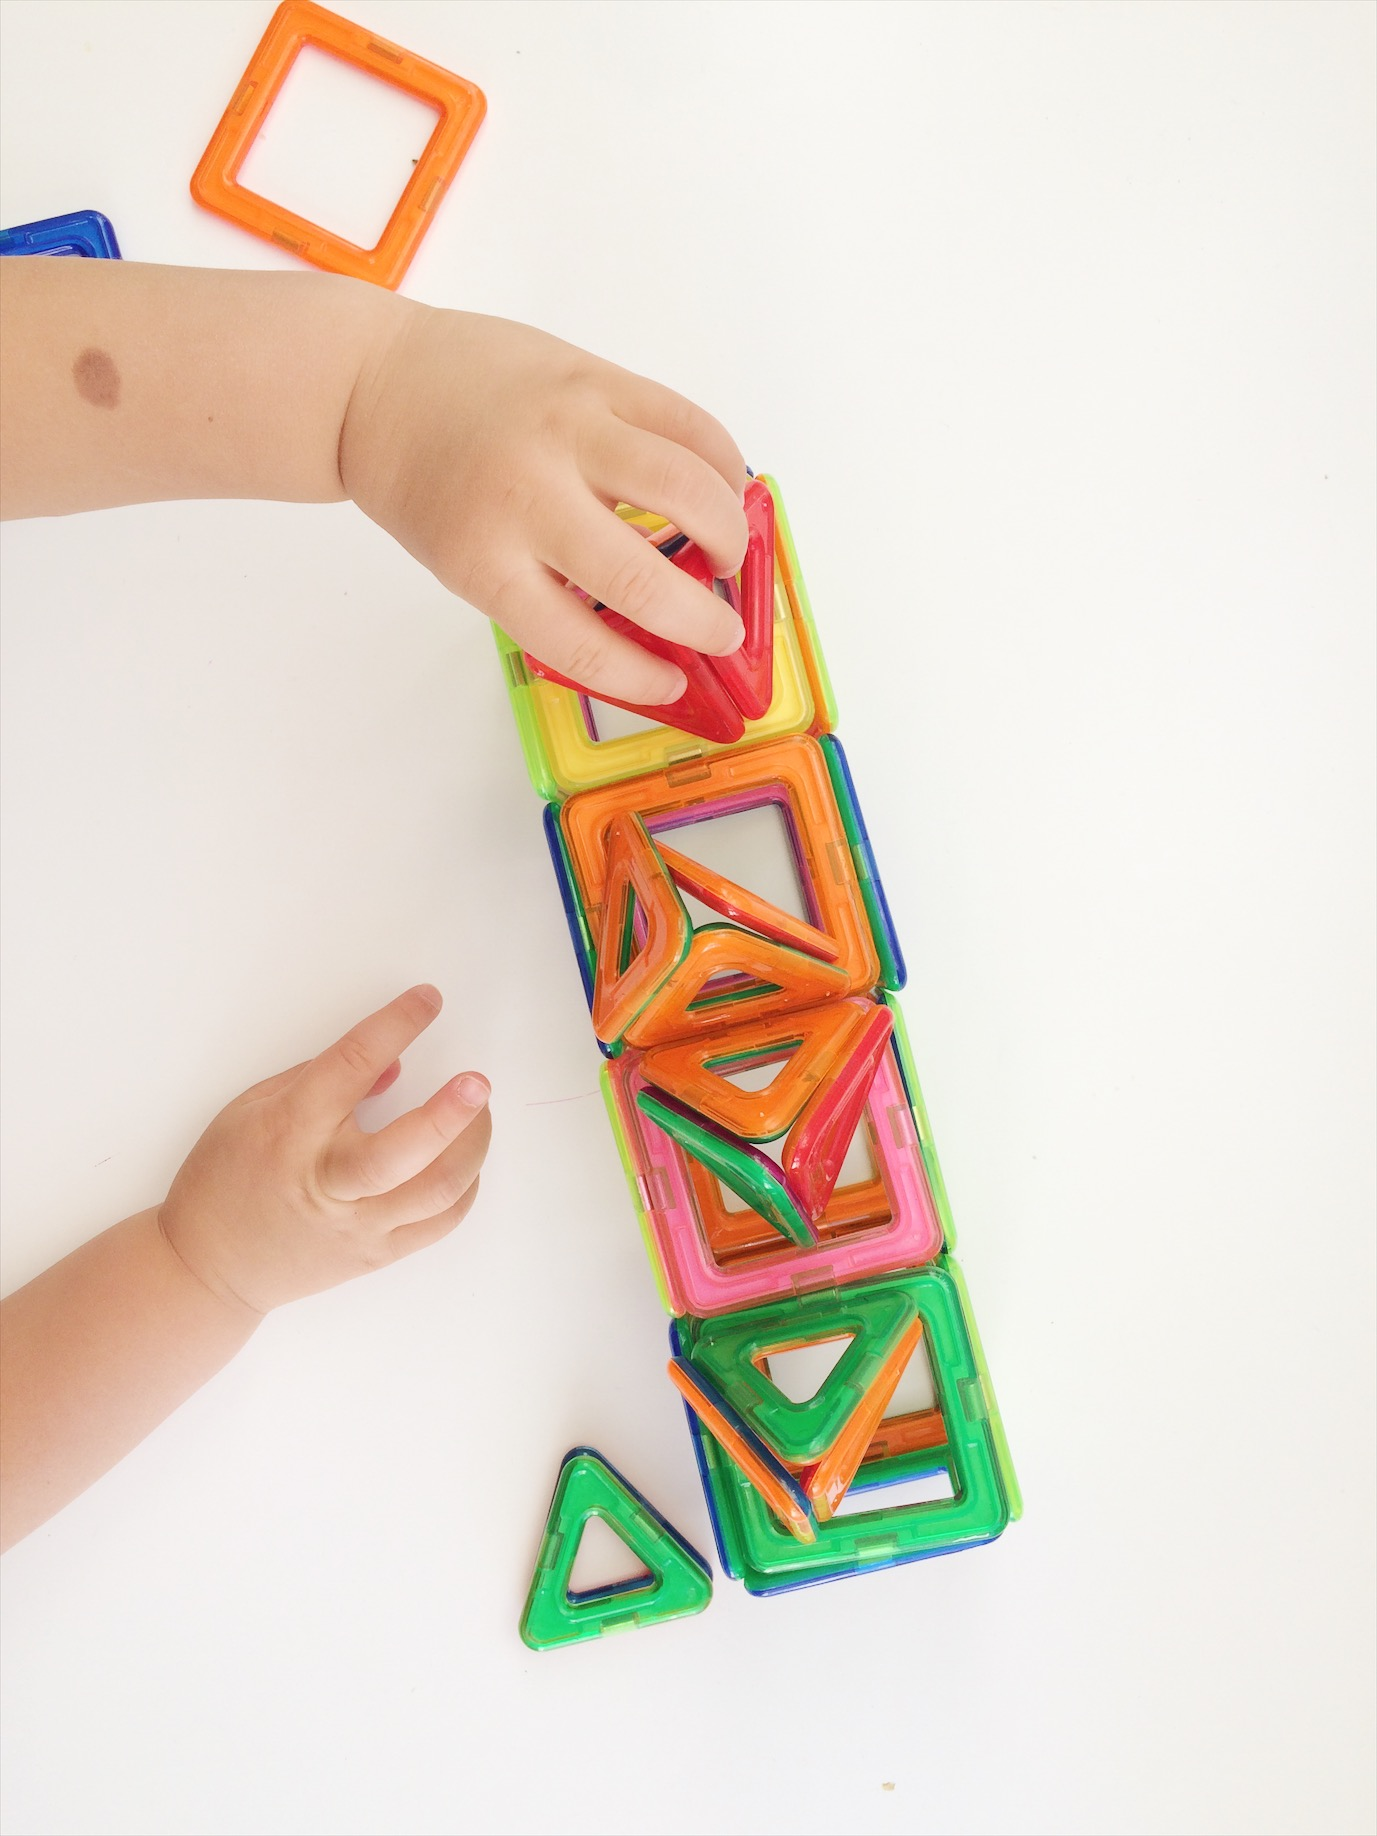 Toddler making house with magnetic building blocks